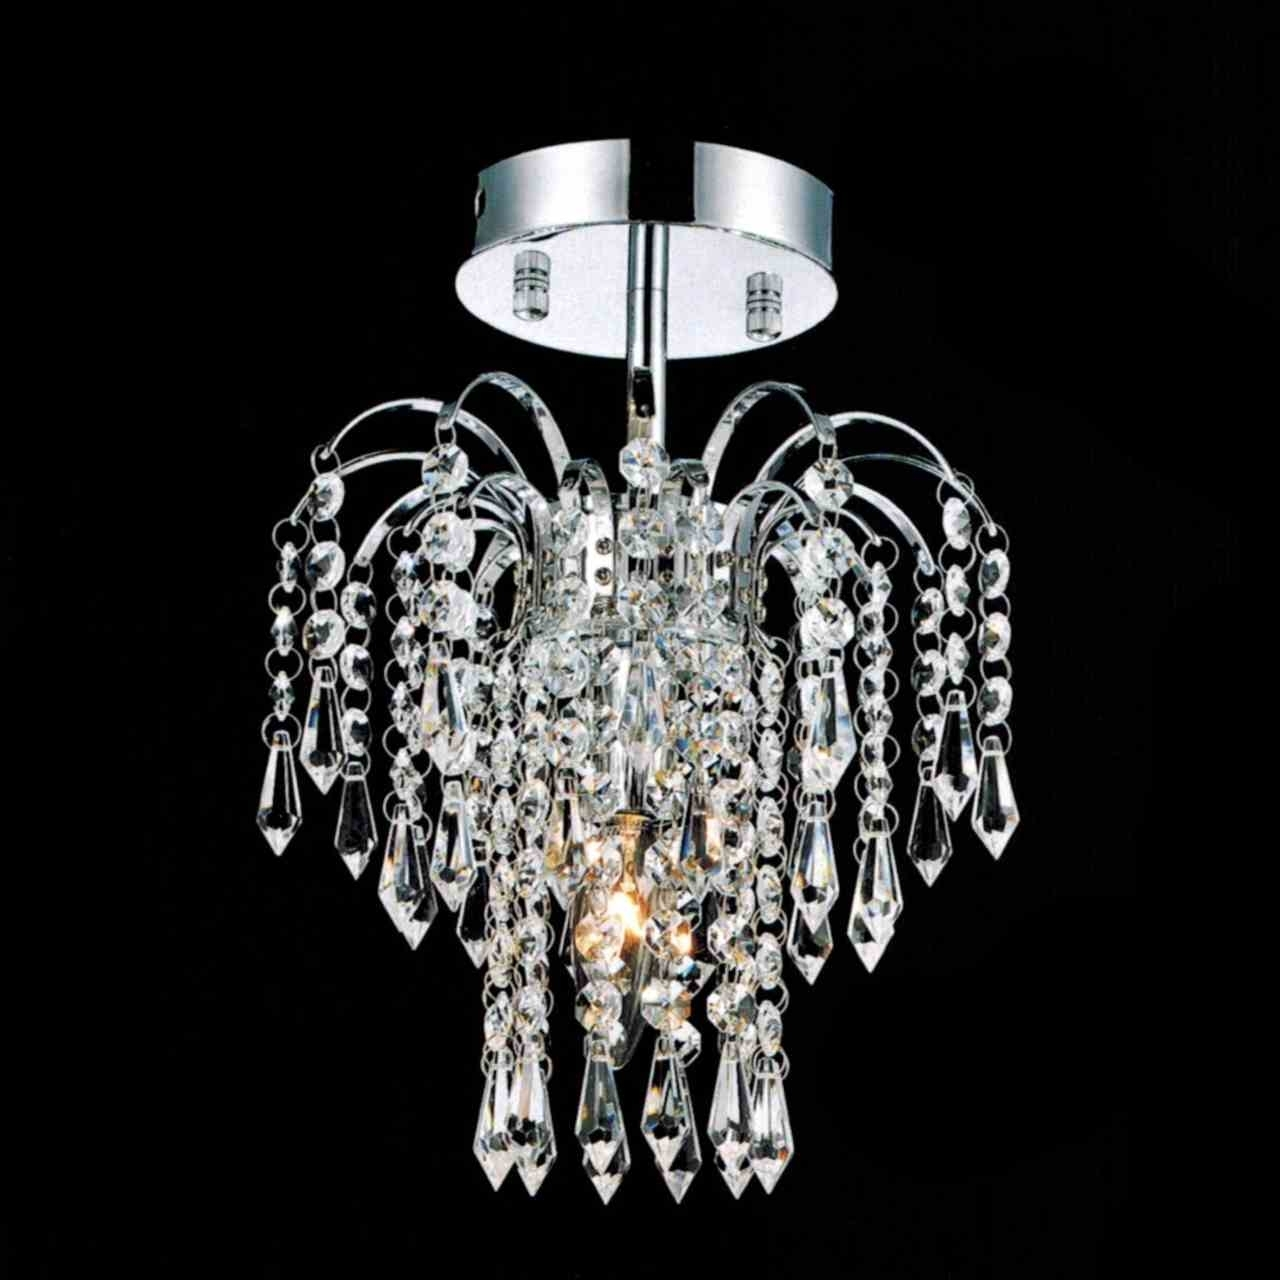 Small Chandeliers For Low Ceilings With Regard To Widely Used Brizzo Lighting Stores (View 13 of 15)